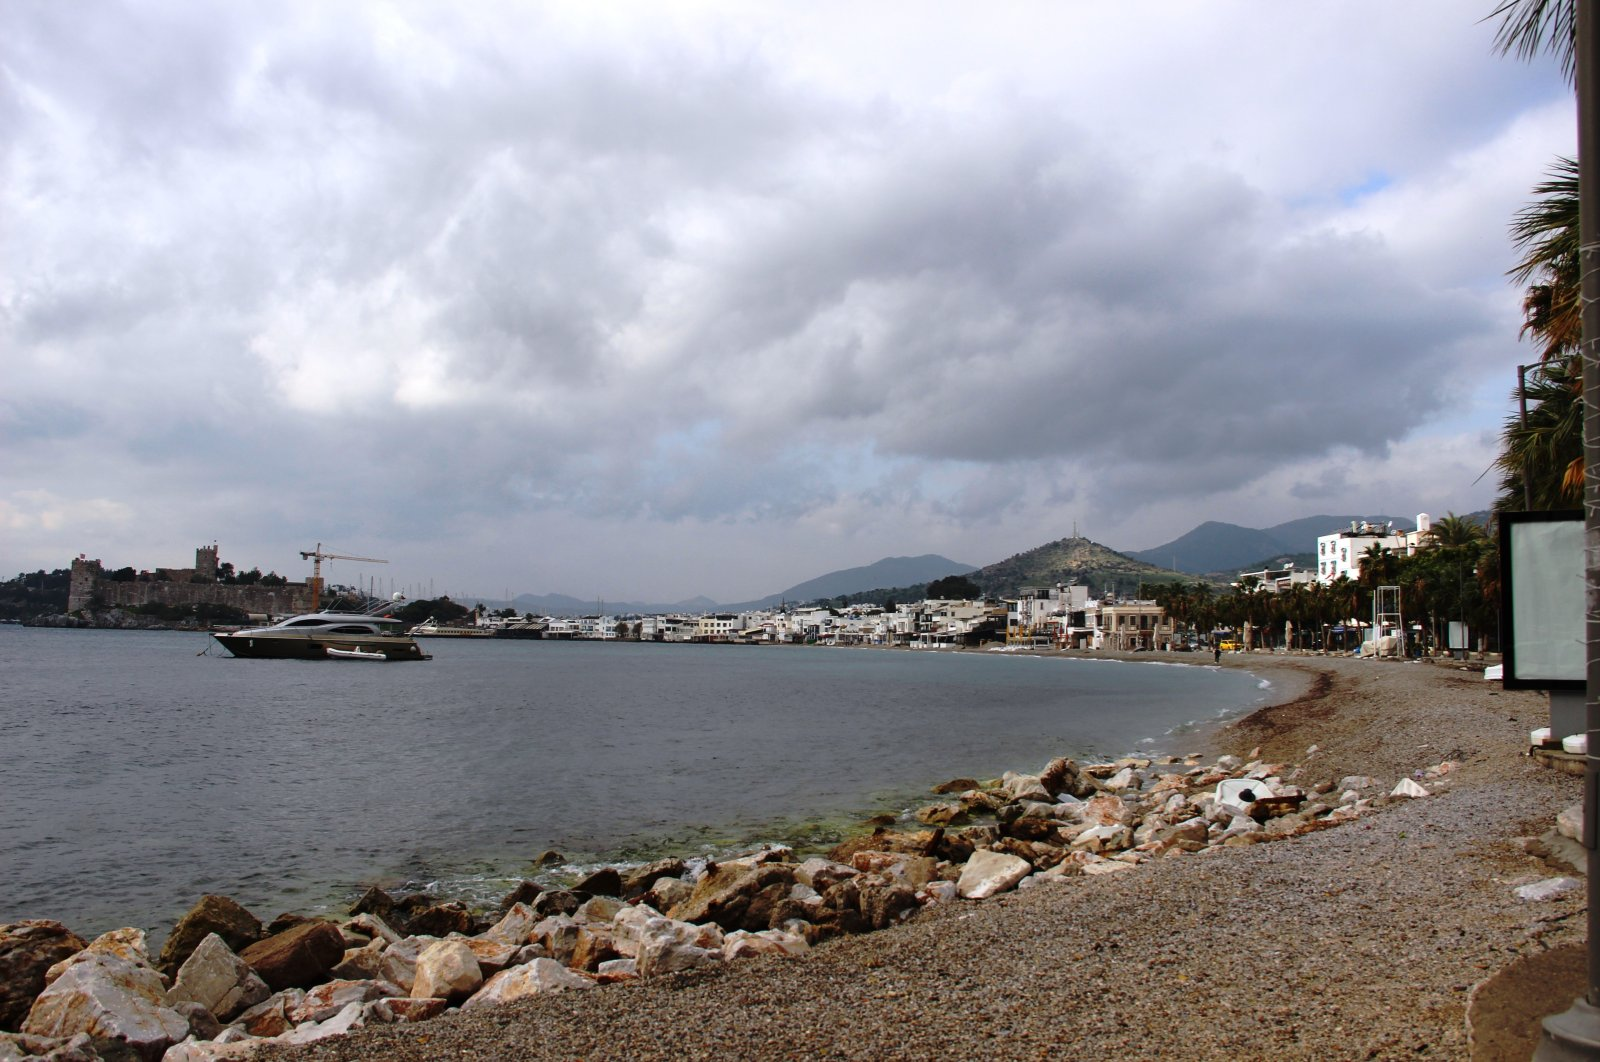 With beaches devoid of crowds, many people frequent the coast more often in Bodrum, Muğla, southwestern Turkey, Jan. 9, 2021. (IHA Photo)